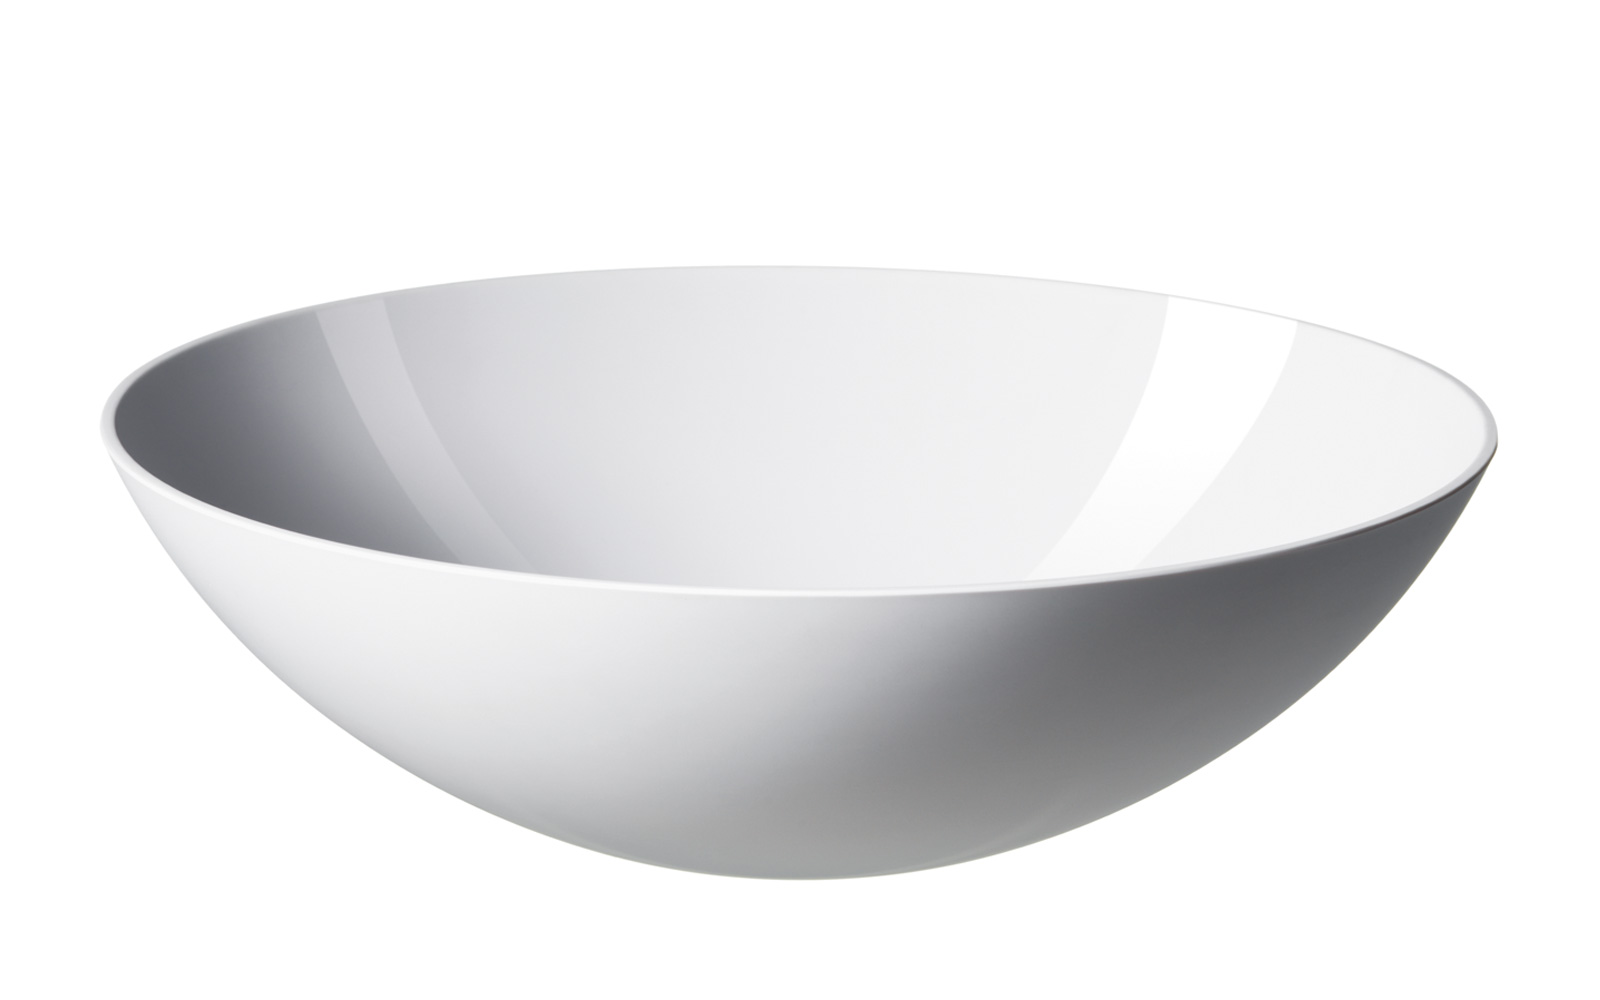 Modern Classic Kitchen Design White Krenit Bowl 216 28 Cm A Modern Classic By Normann